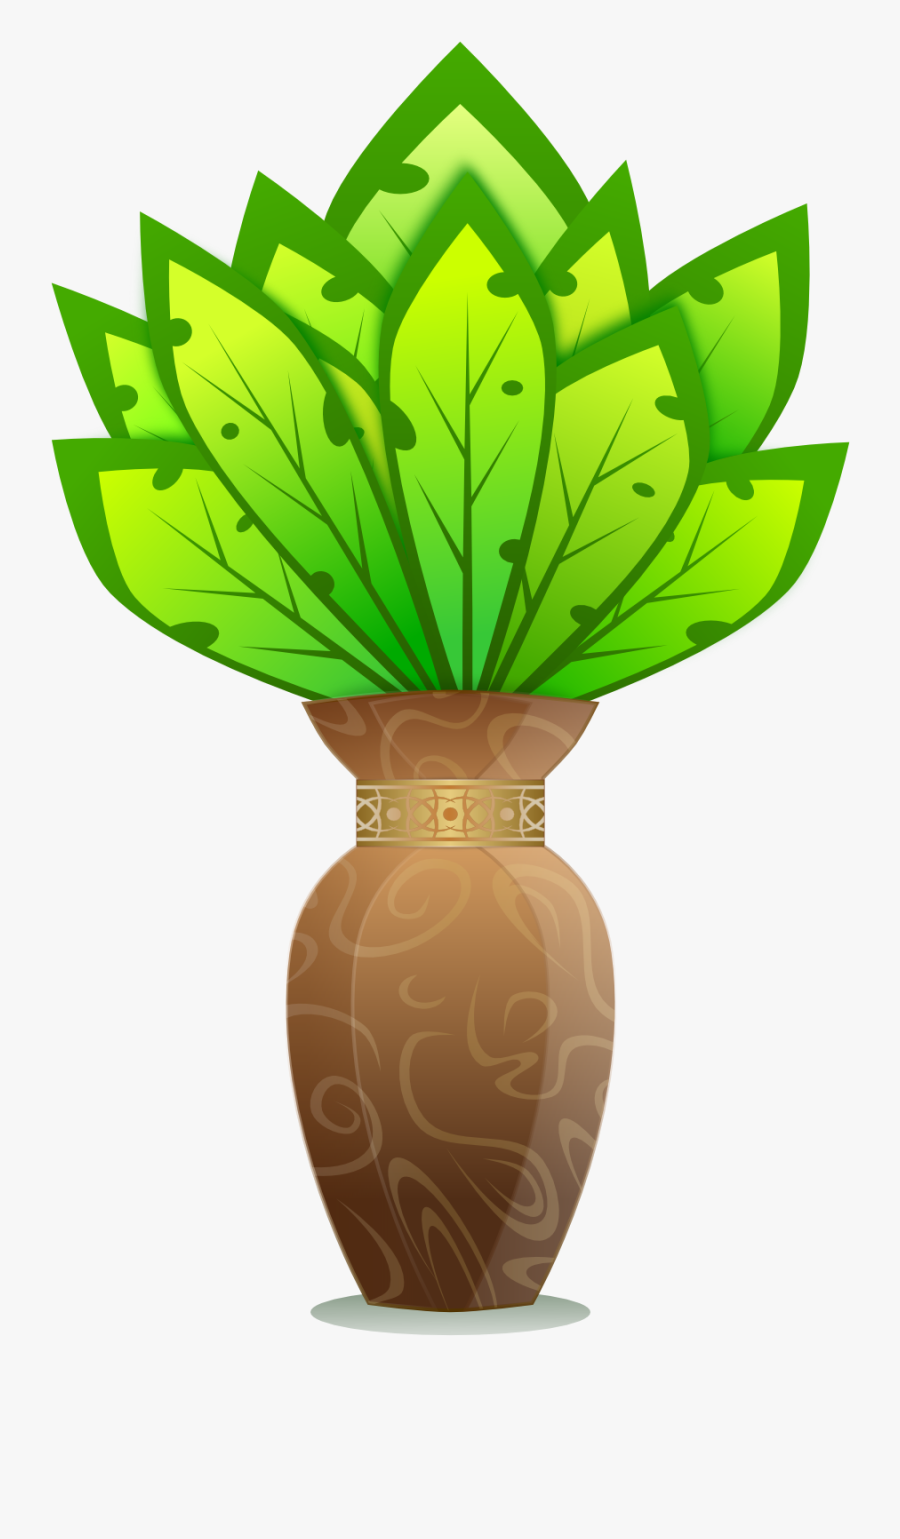 Plant Images Free Download Clip Art On.